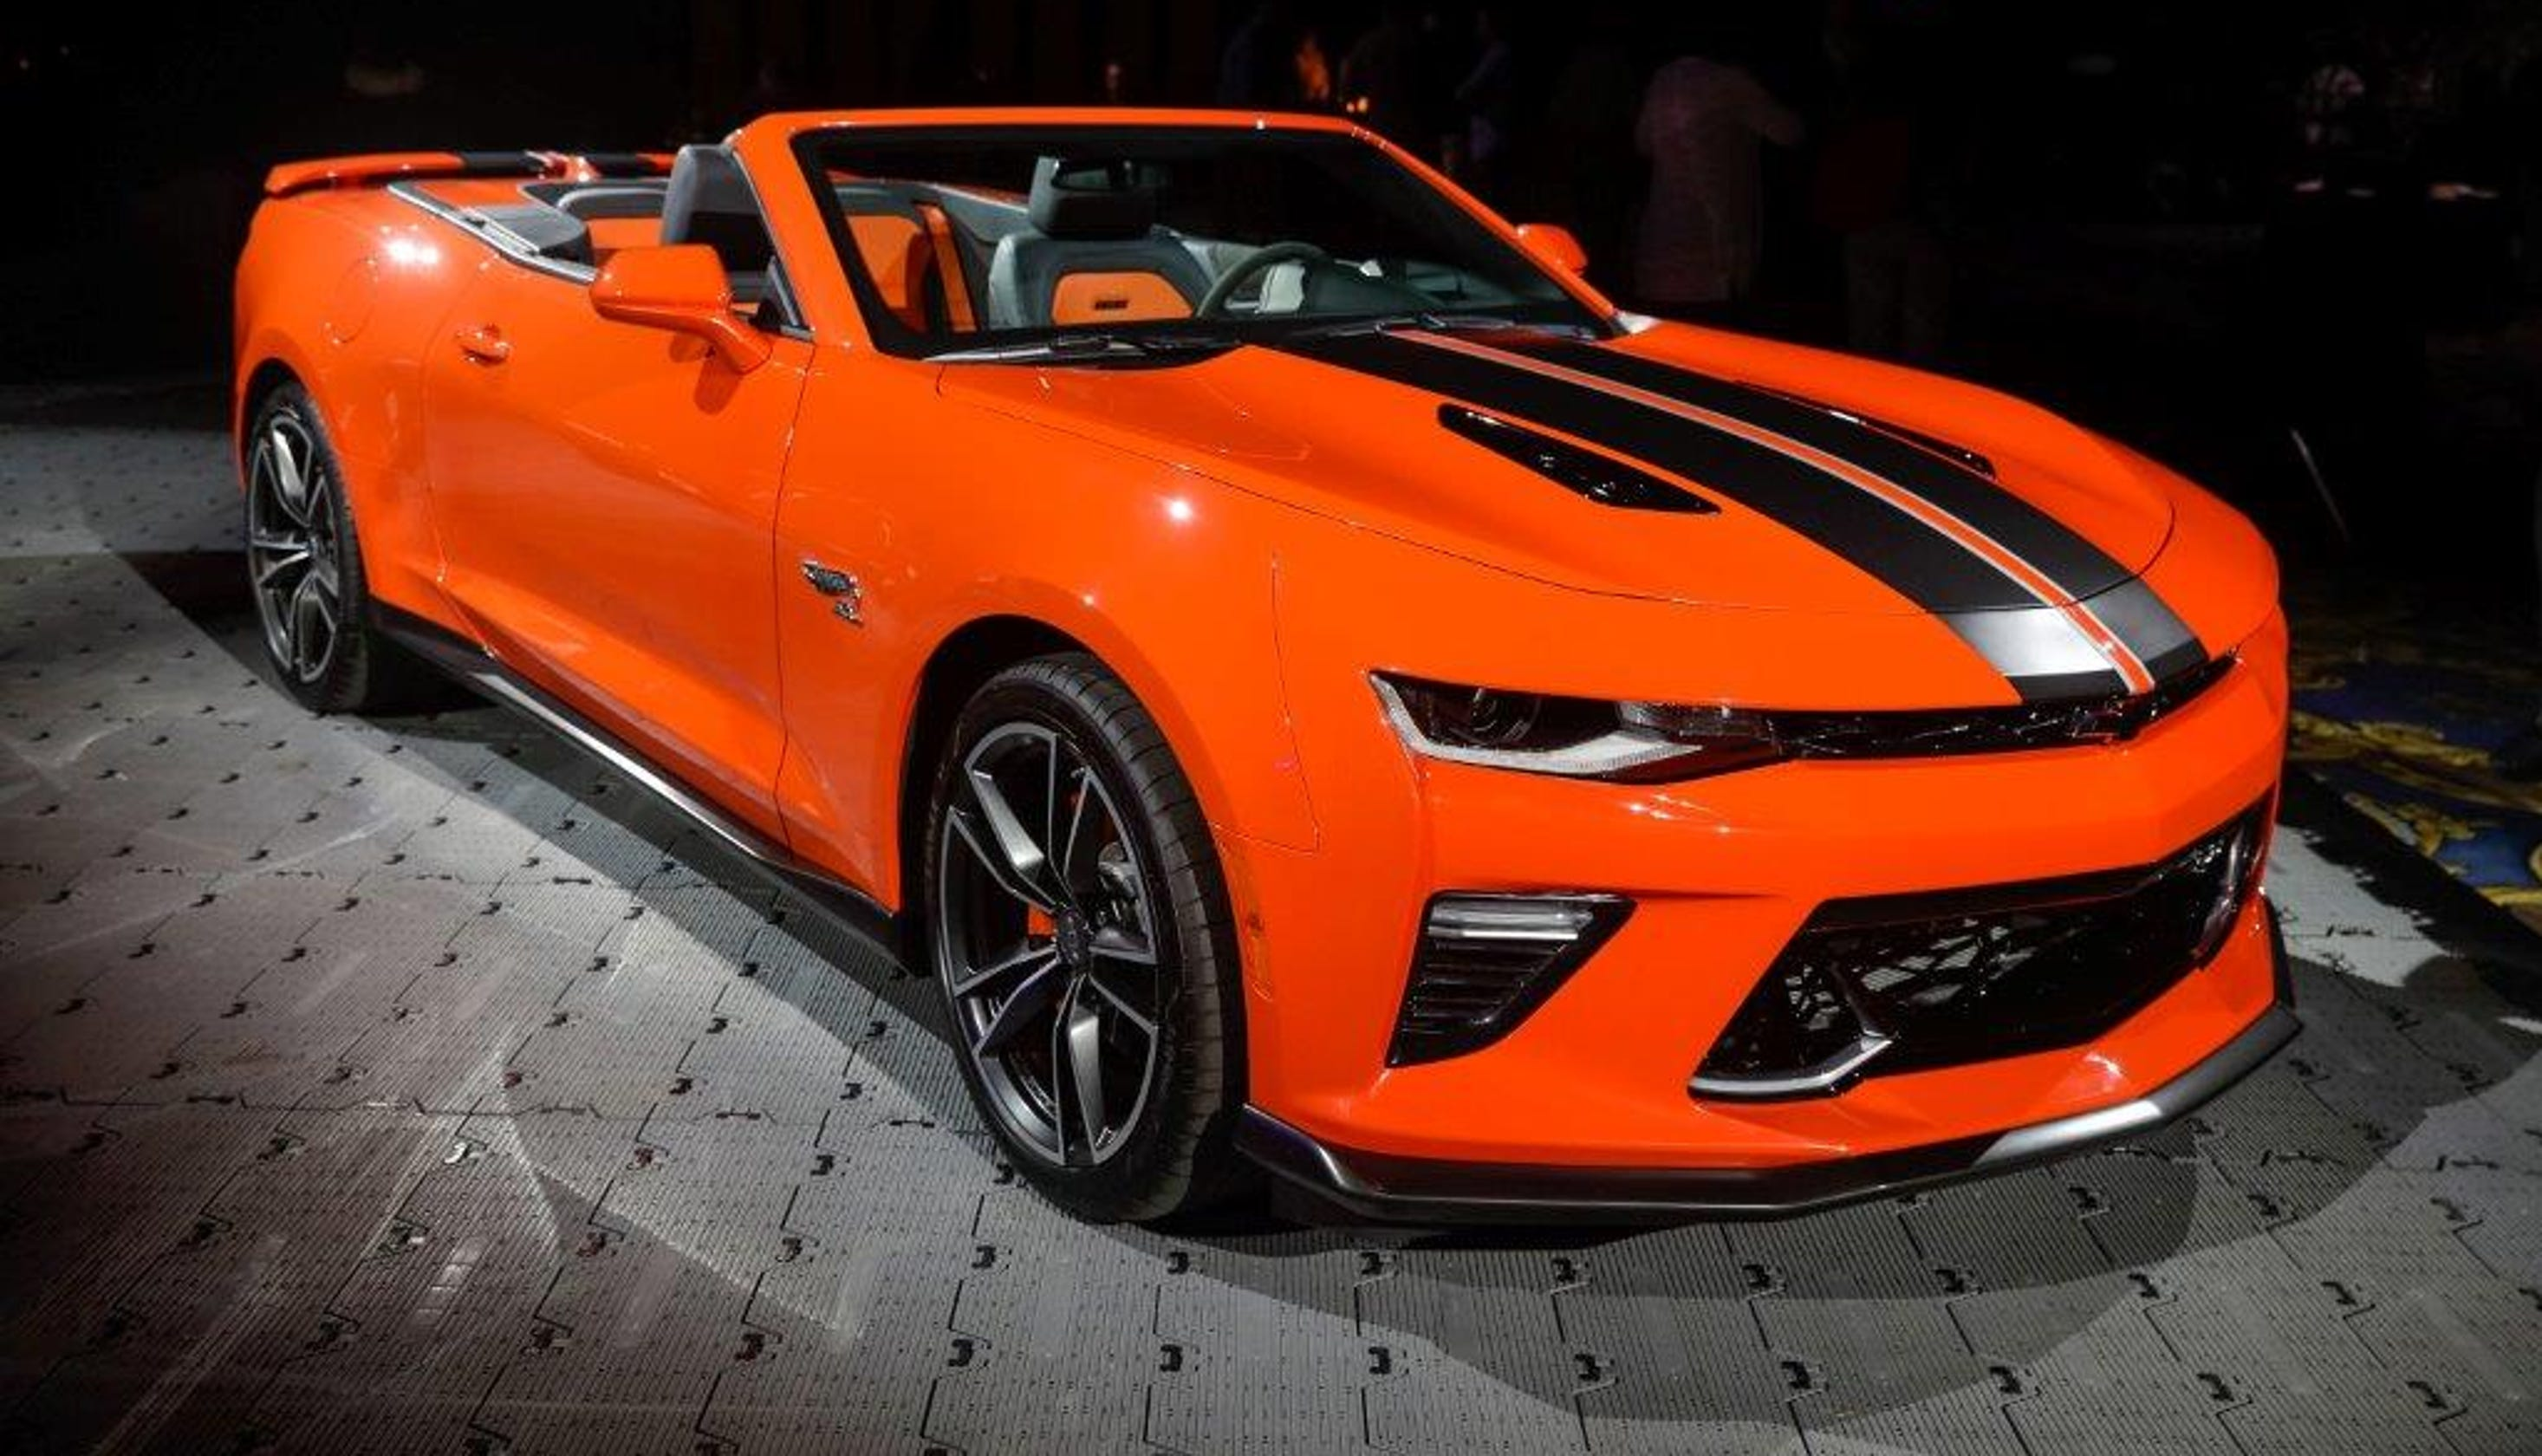 Fire Your Therapist And Buy A Camaro Or Mustang Instead